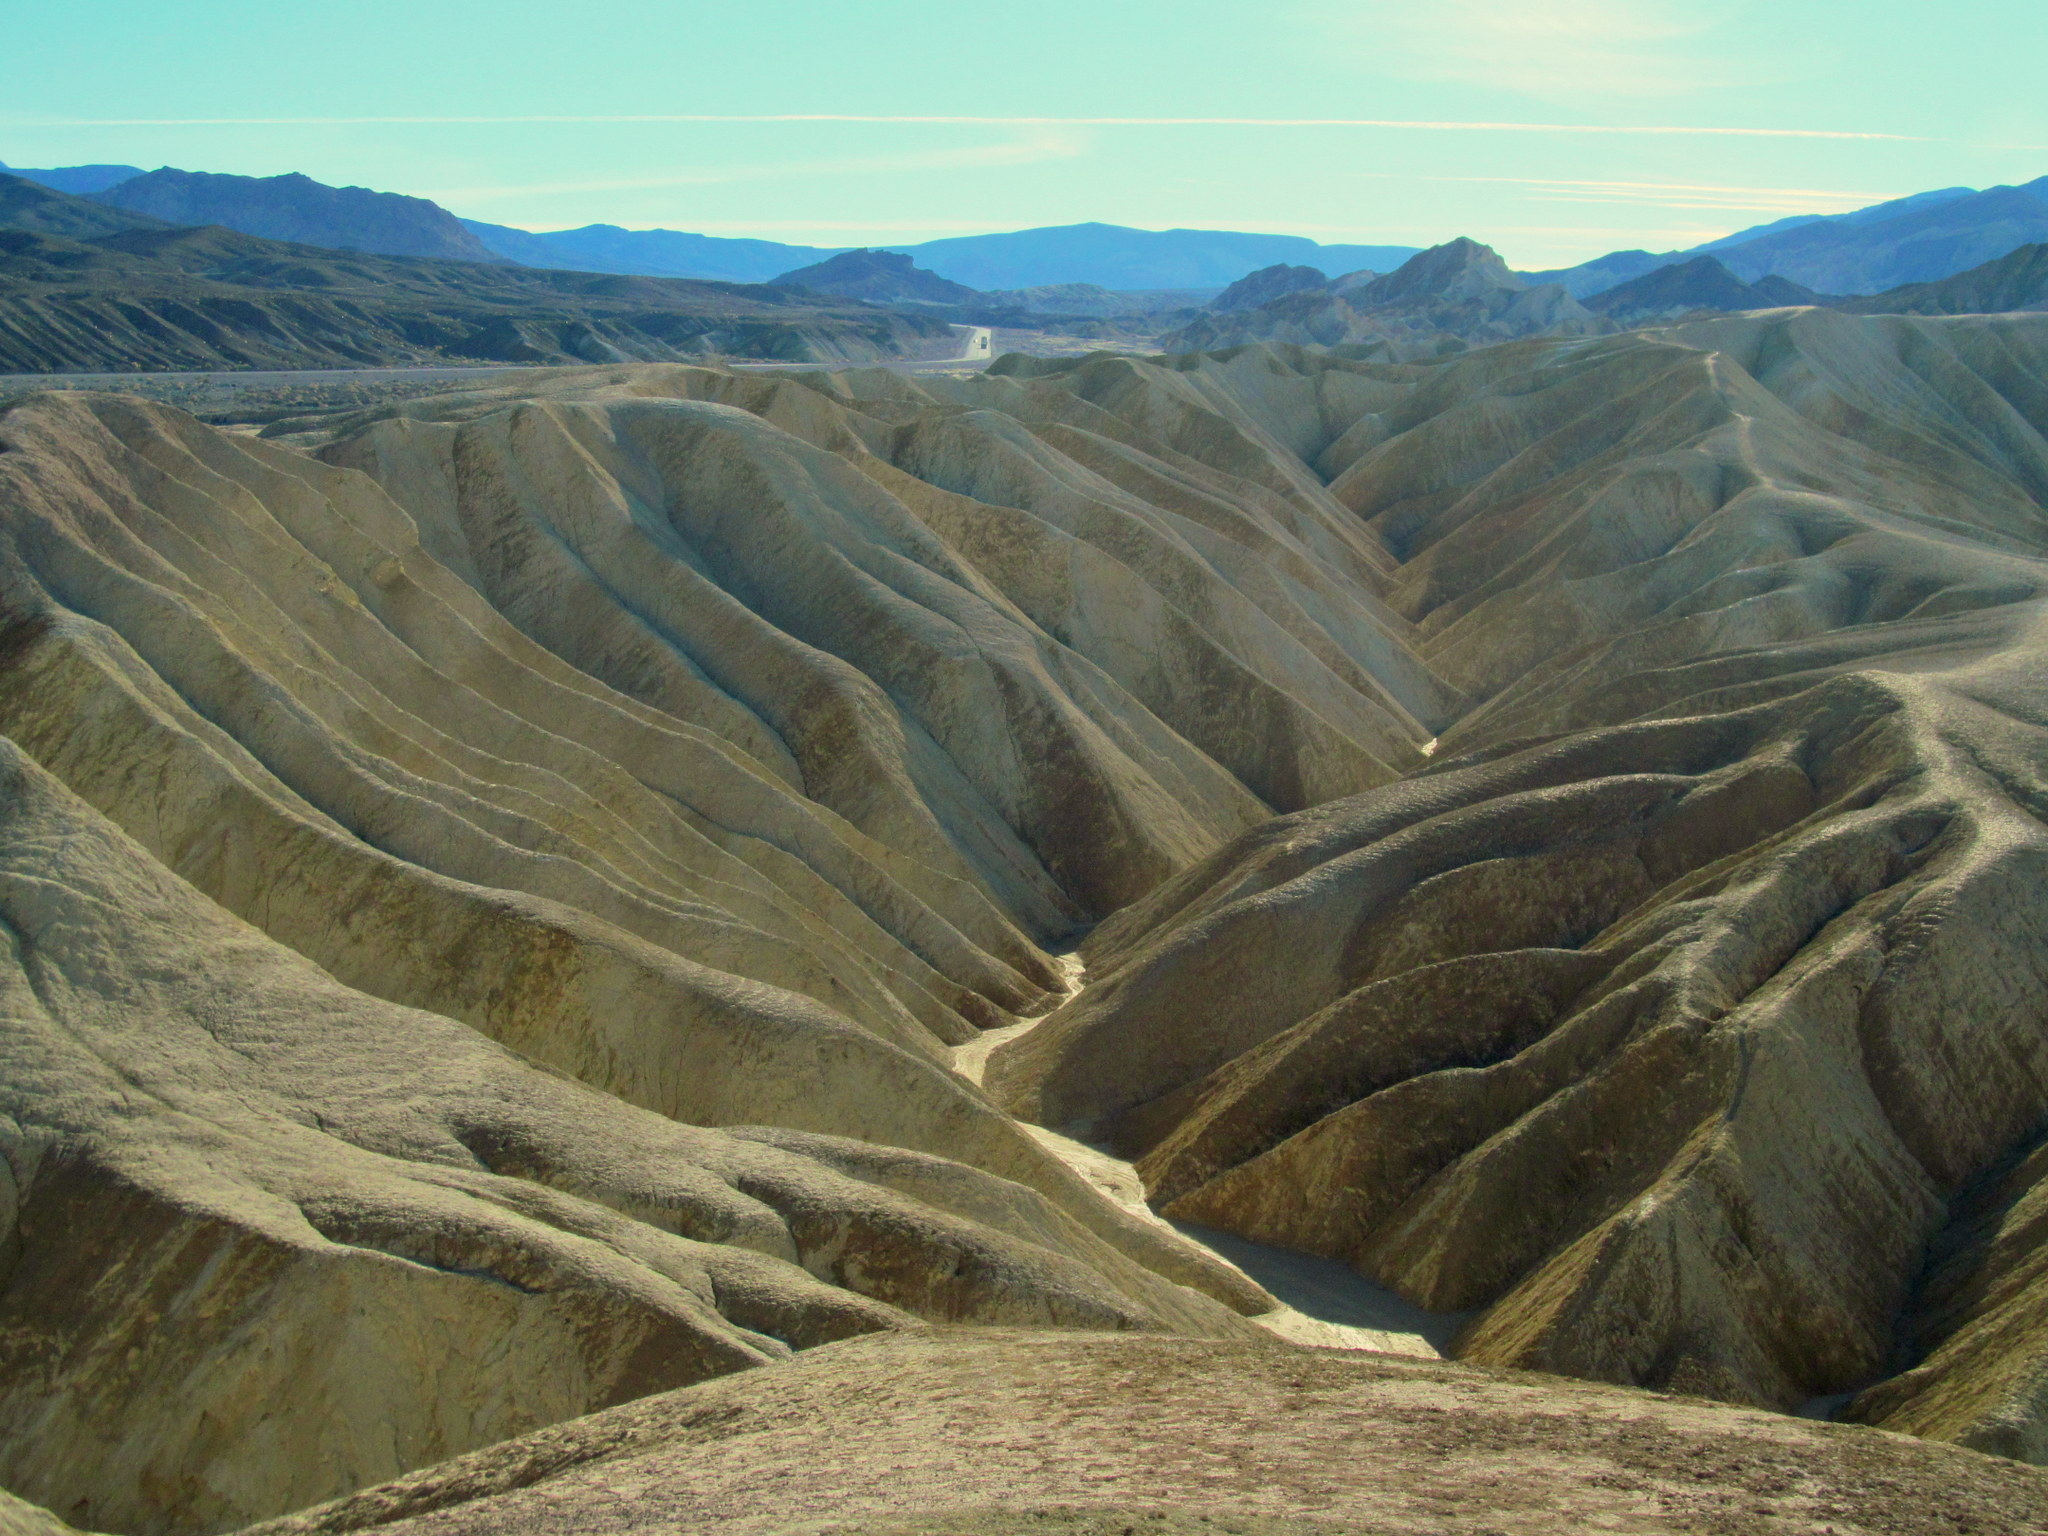 Photo: Badlands at Zabriskie Point